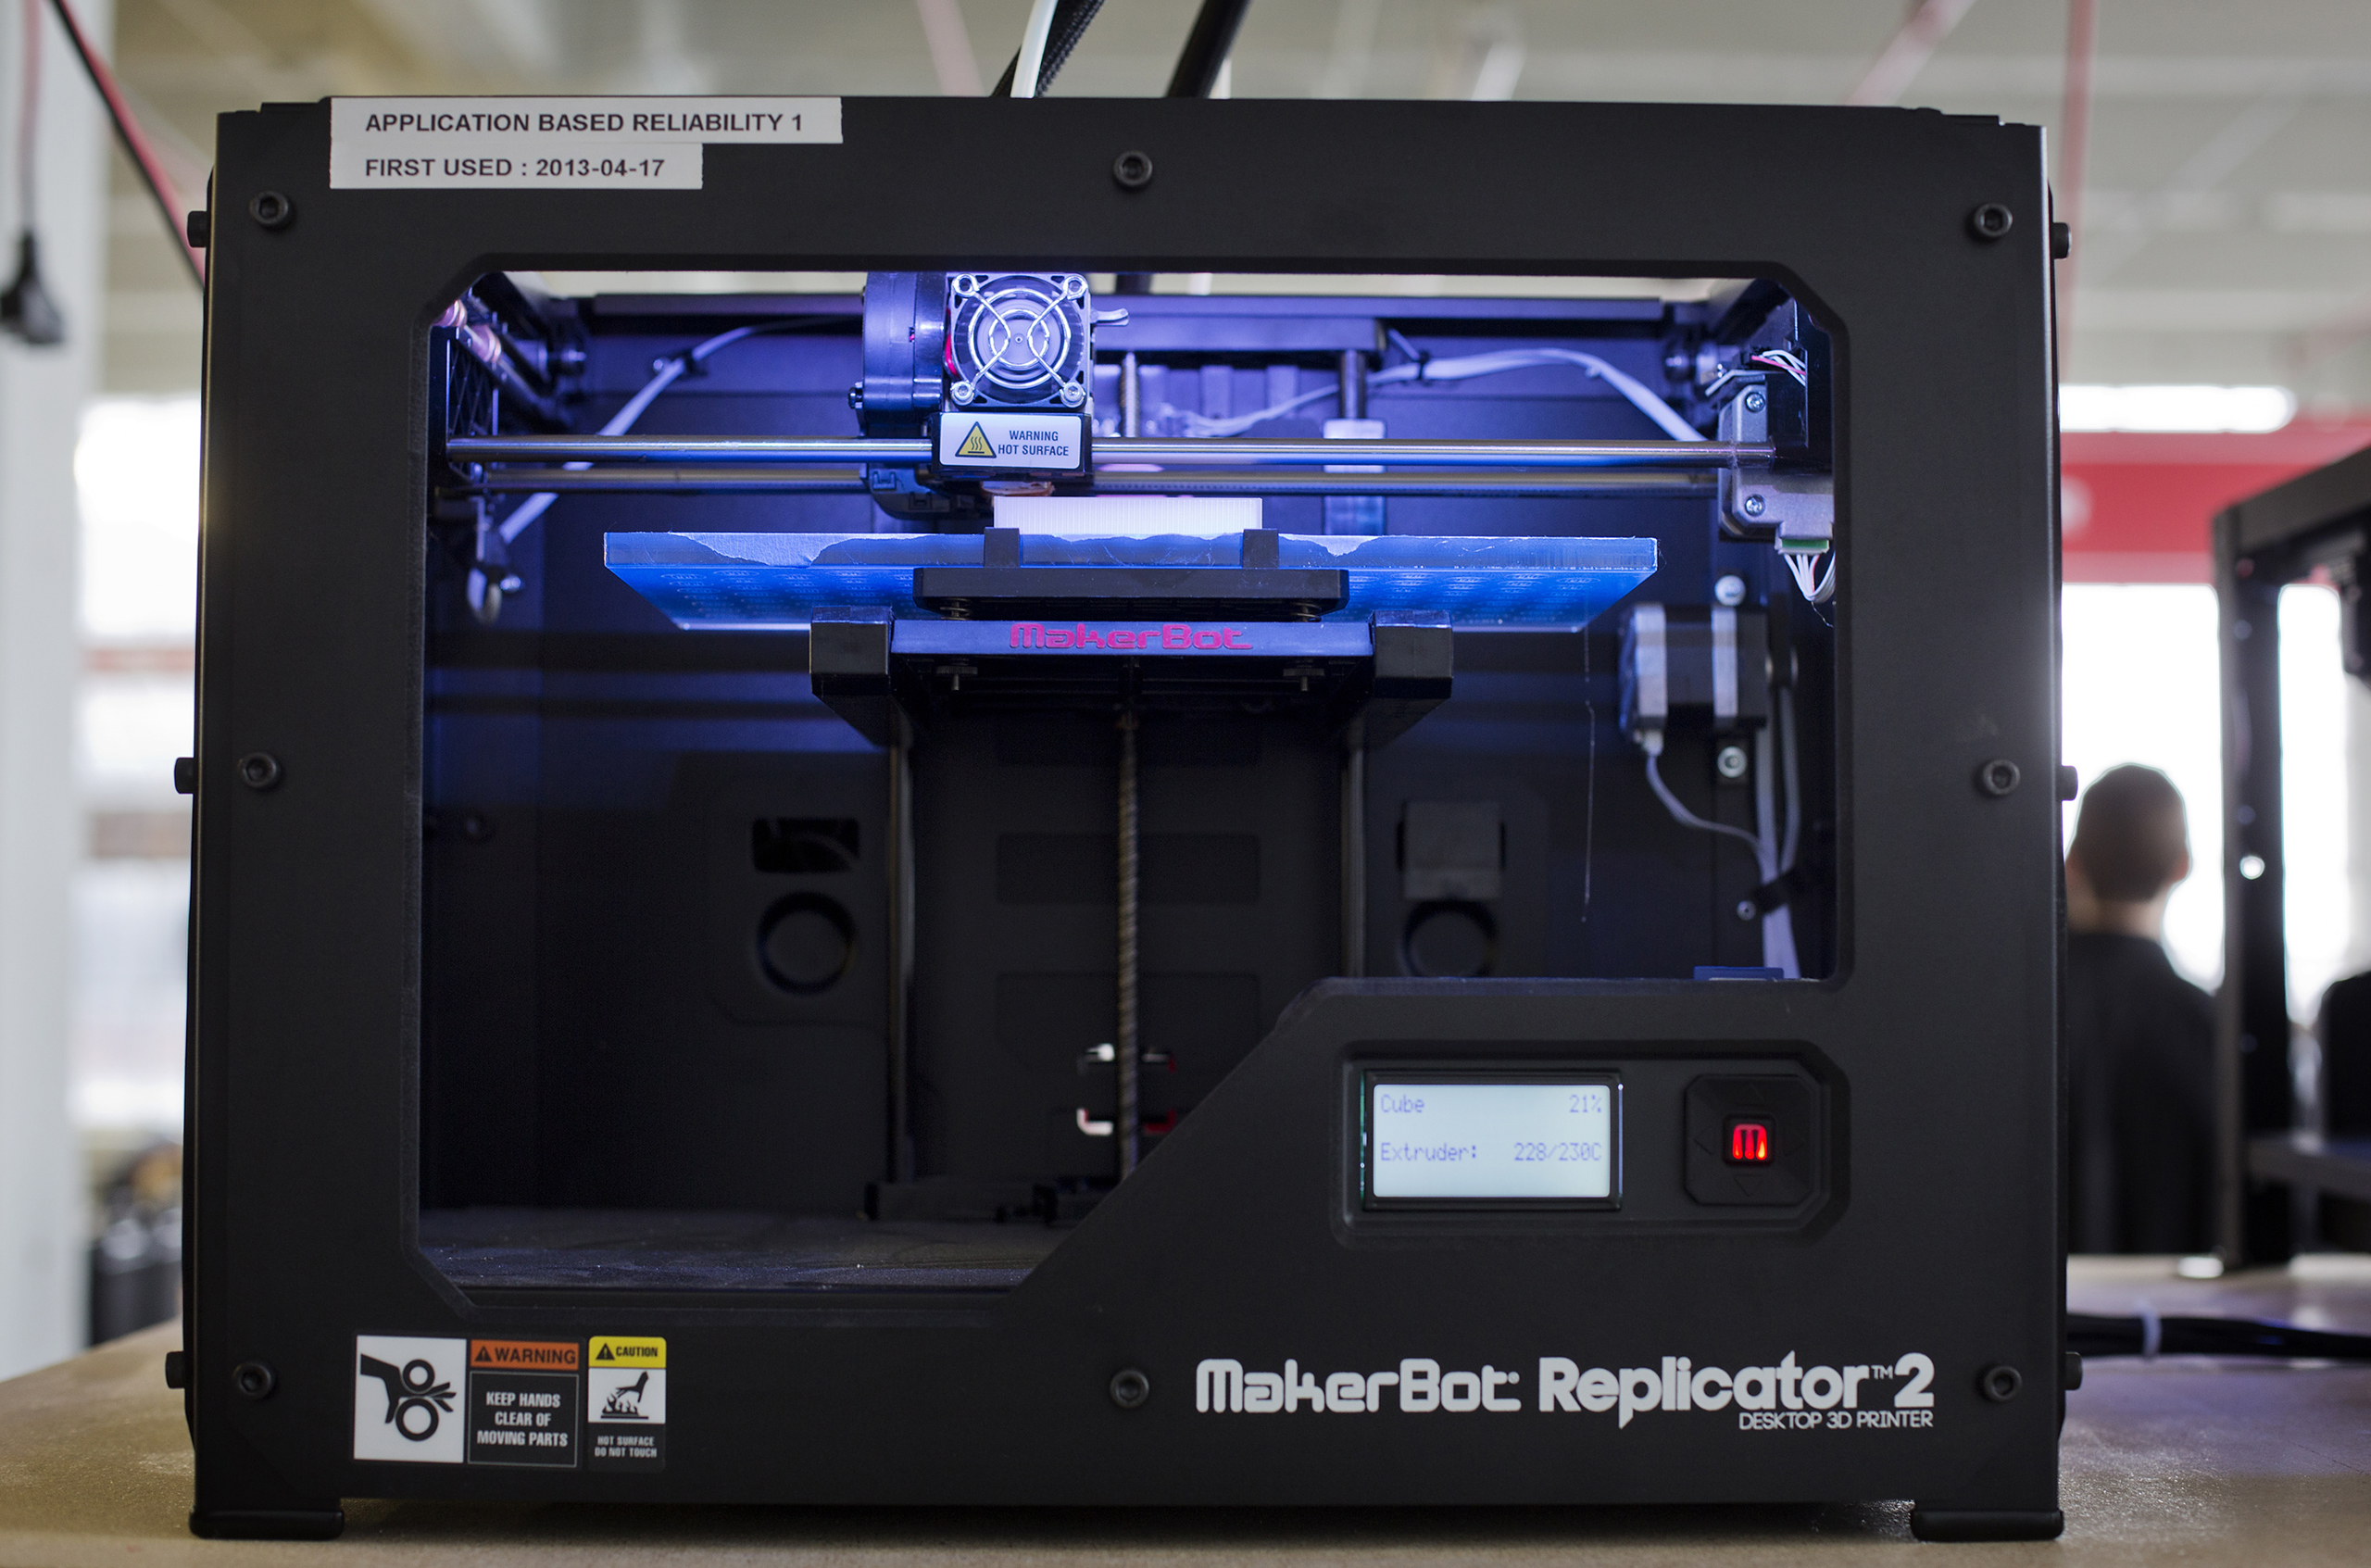 Makerbot Industries LLC Replicator 2 Desktop 3D Printer